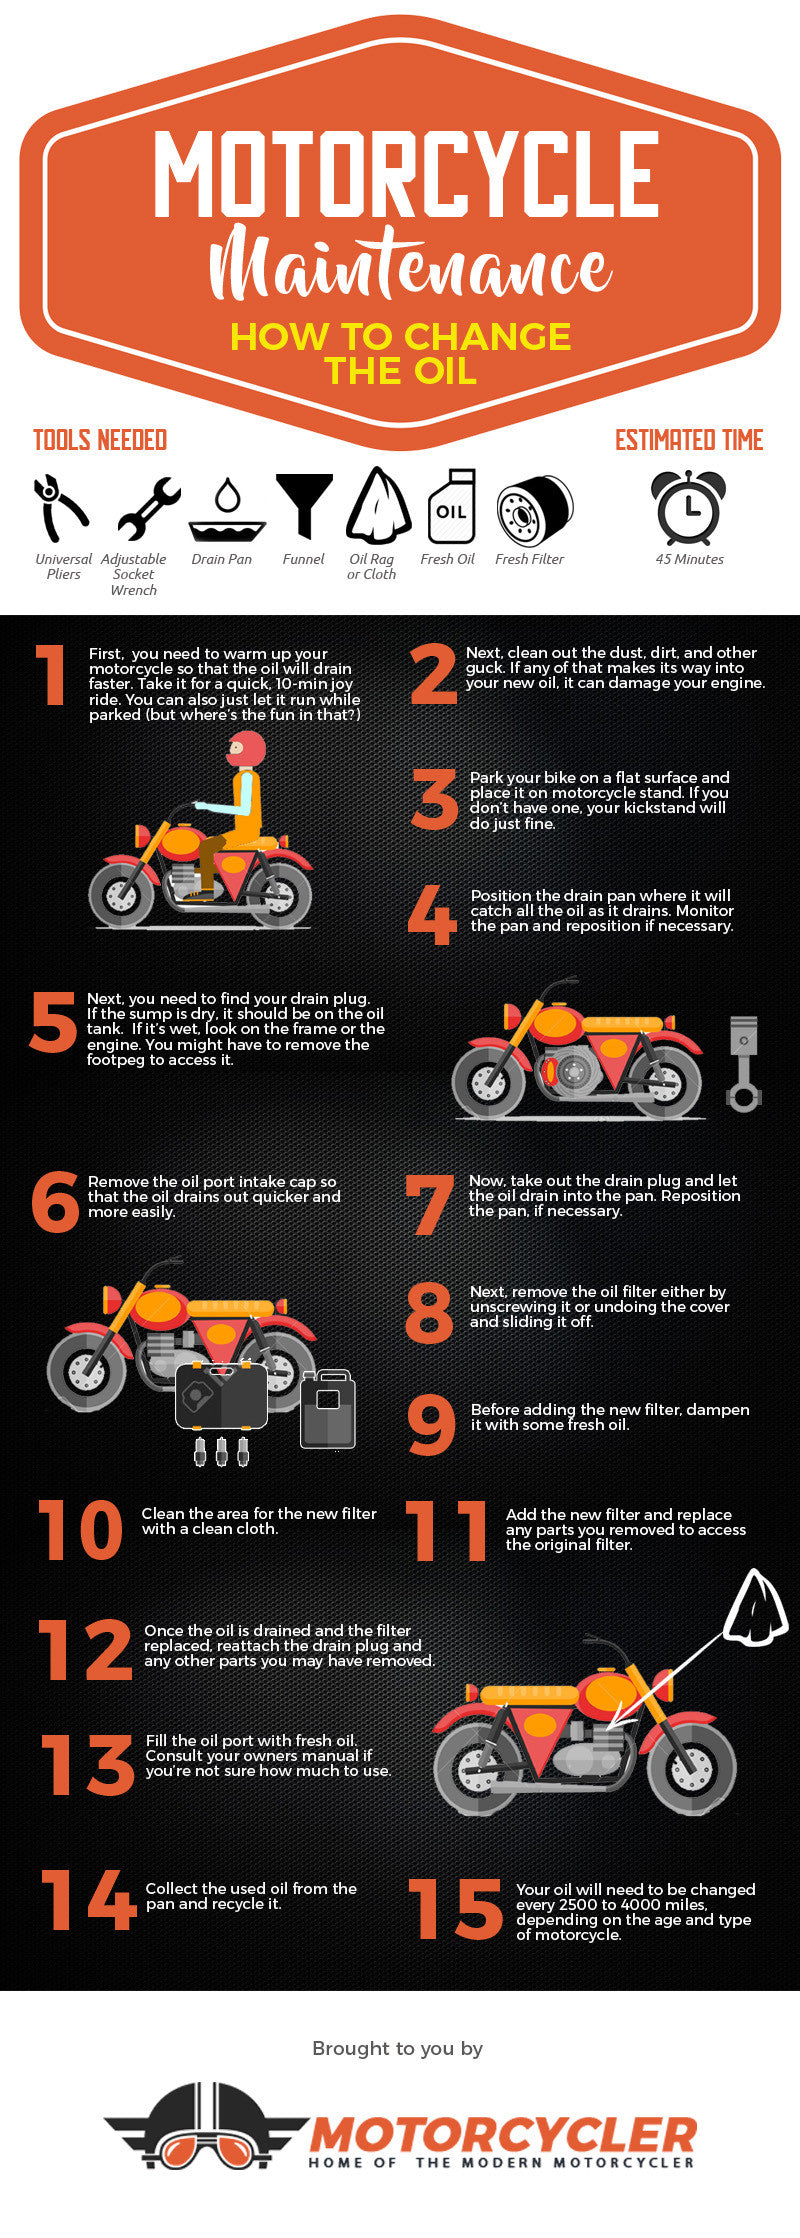 Change Oil Filter - Motorcycle Maintenance Infographic